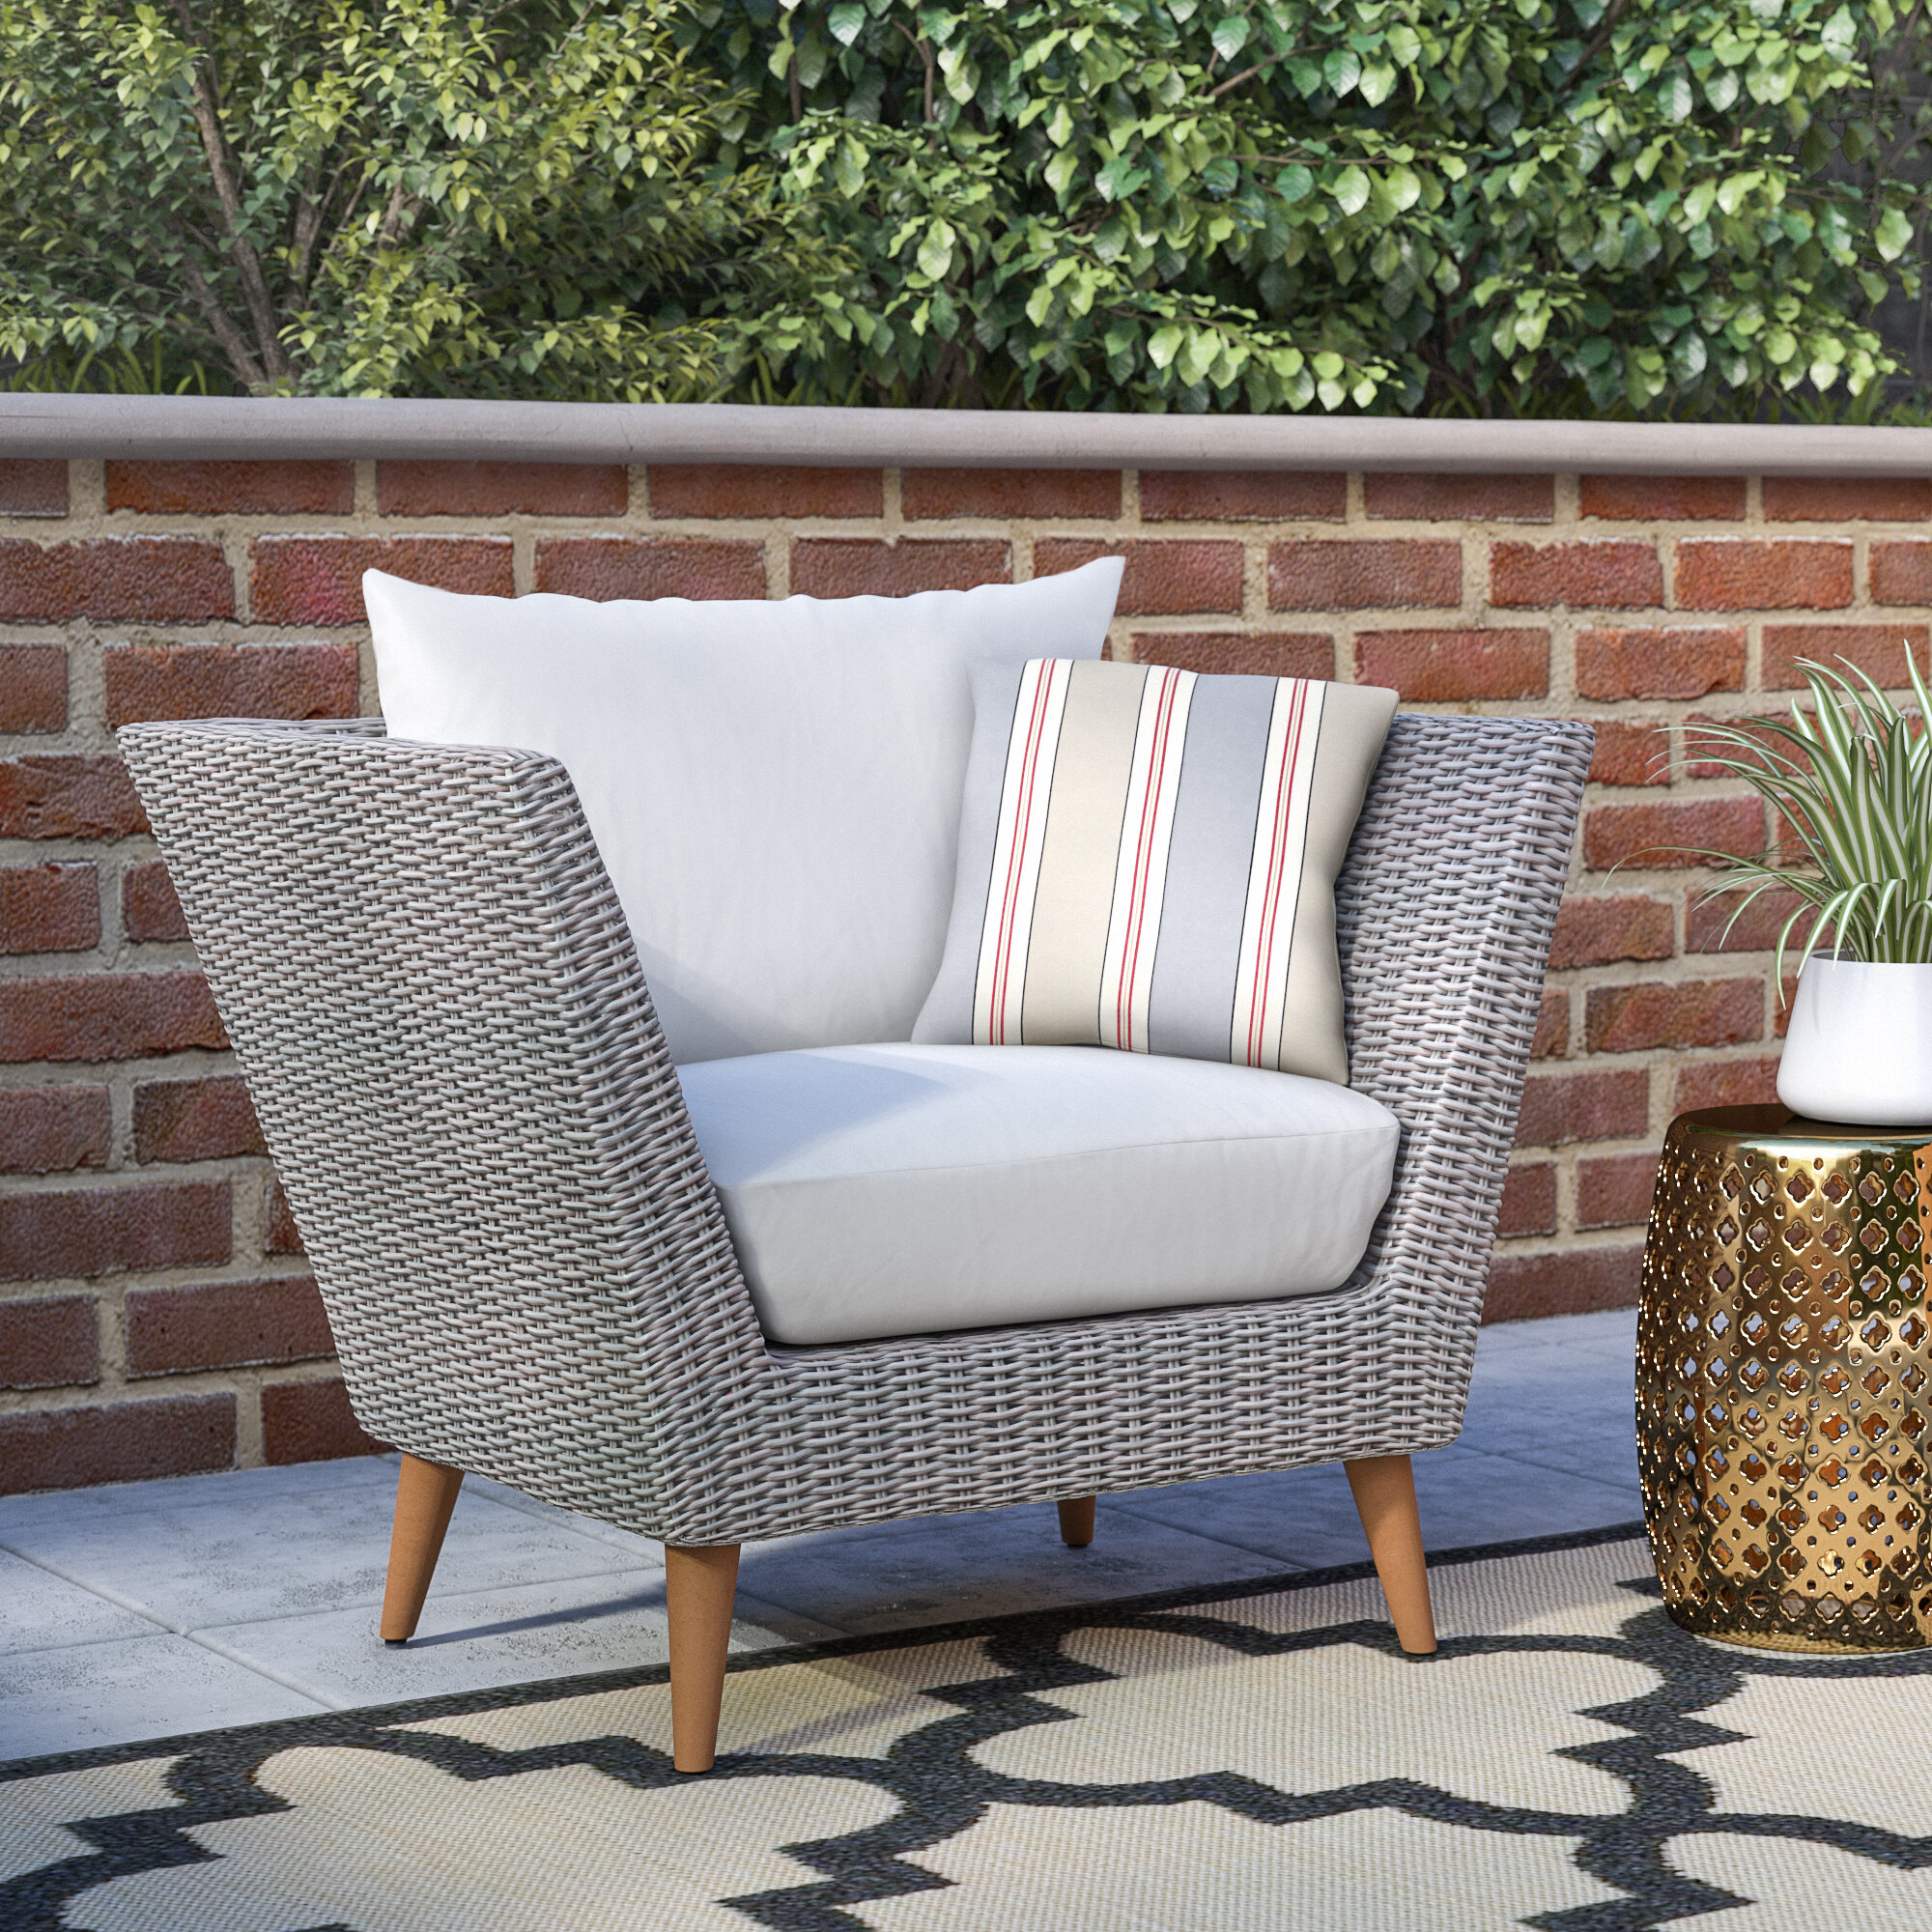 Langley Street Newbury Eucalyptus Patio Arm Chair with Cushions